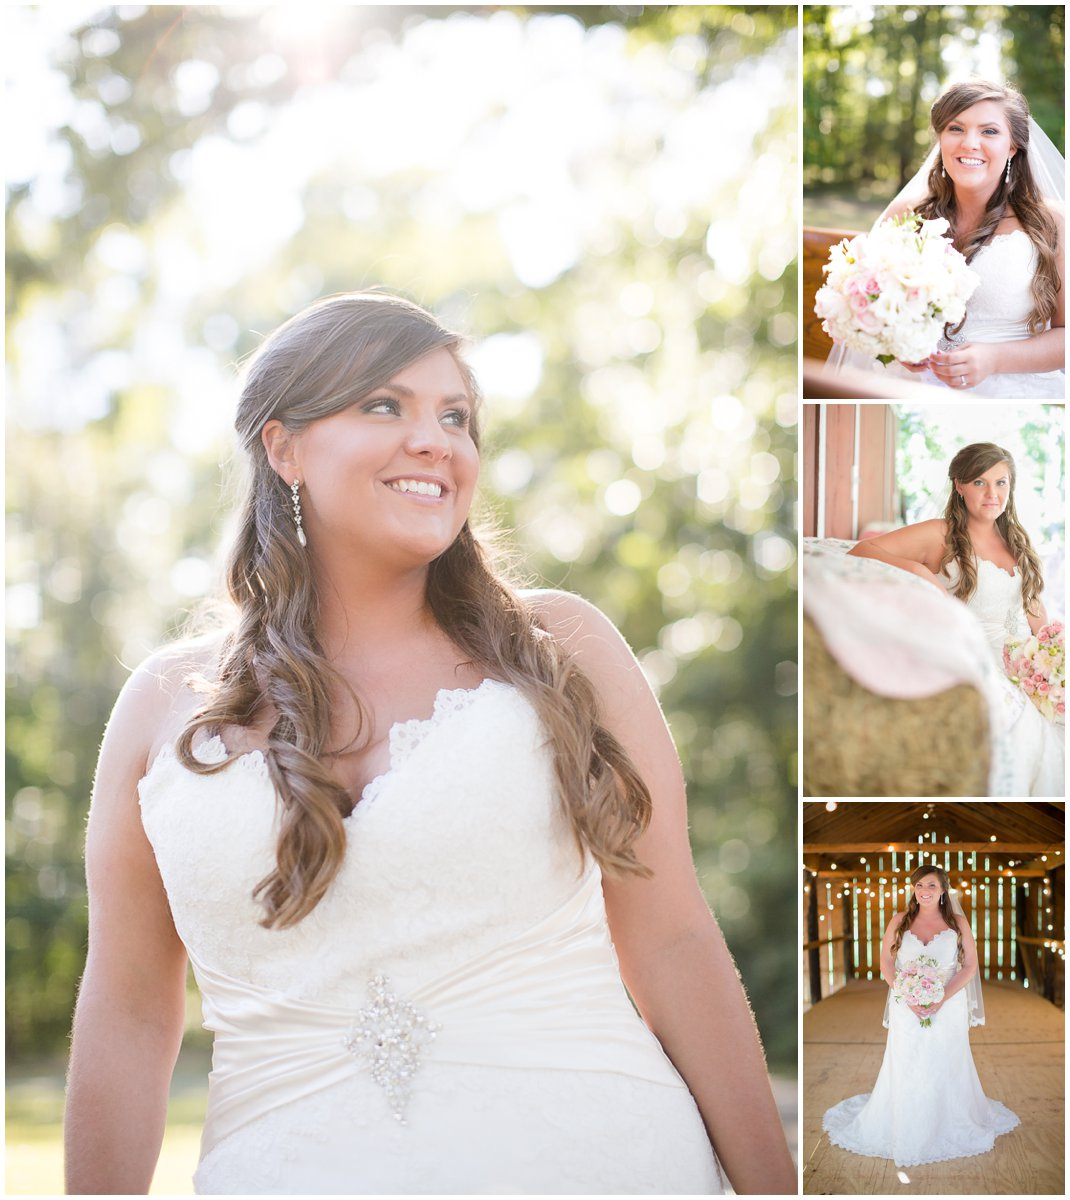 JuliannPrestonWedding_0012